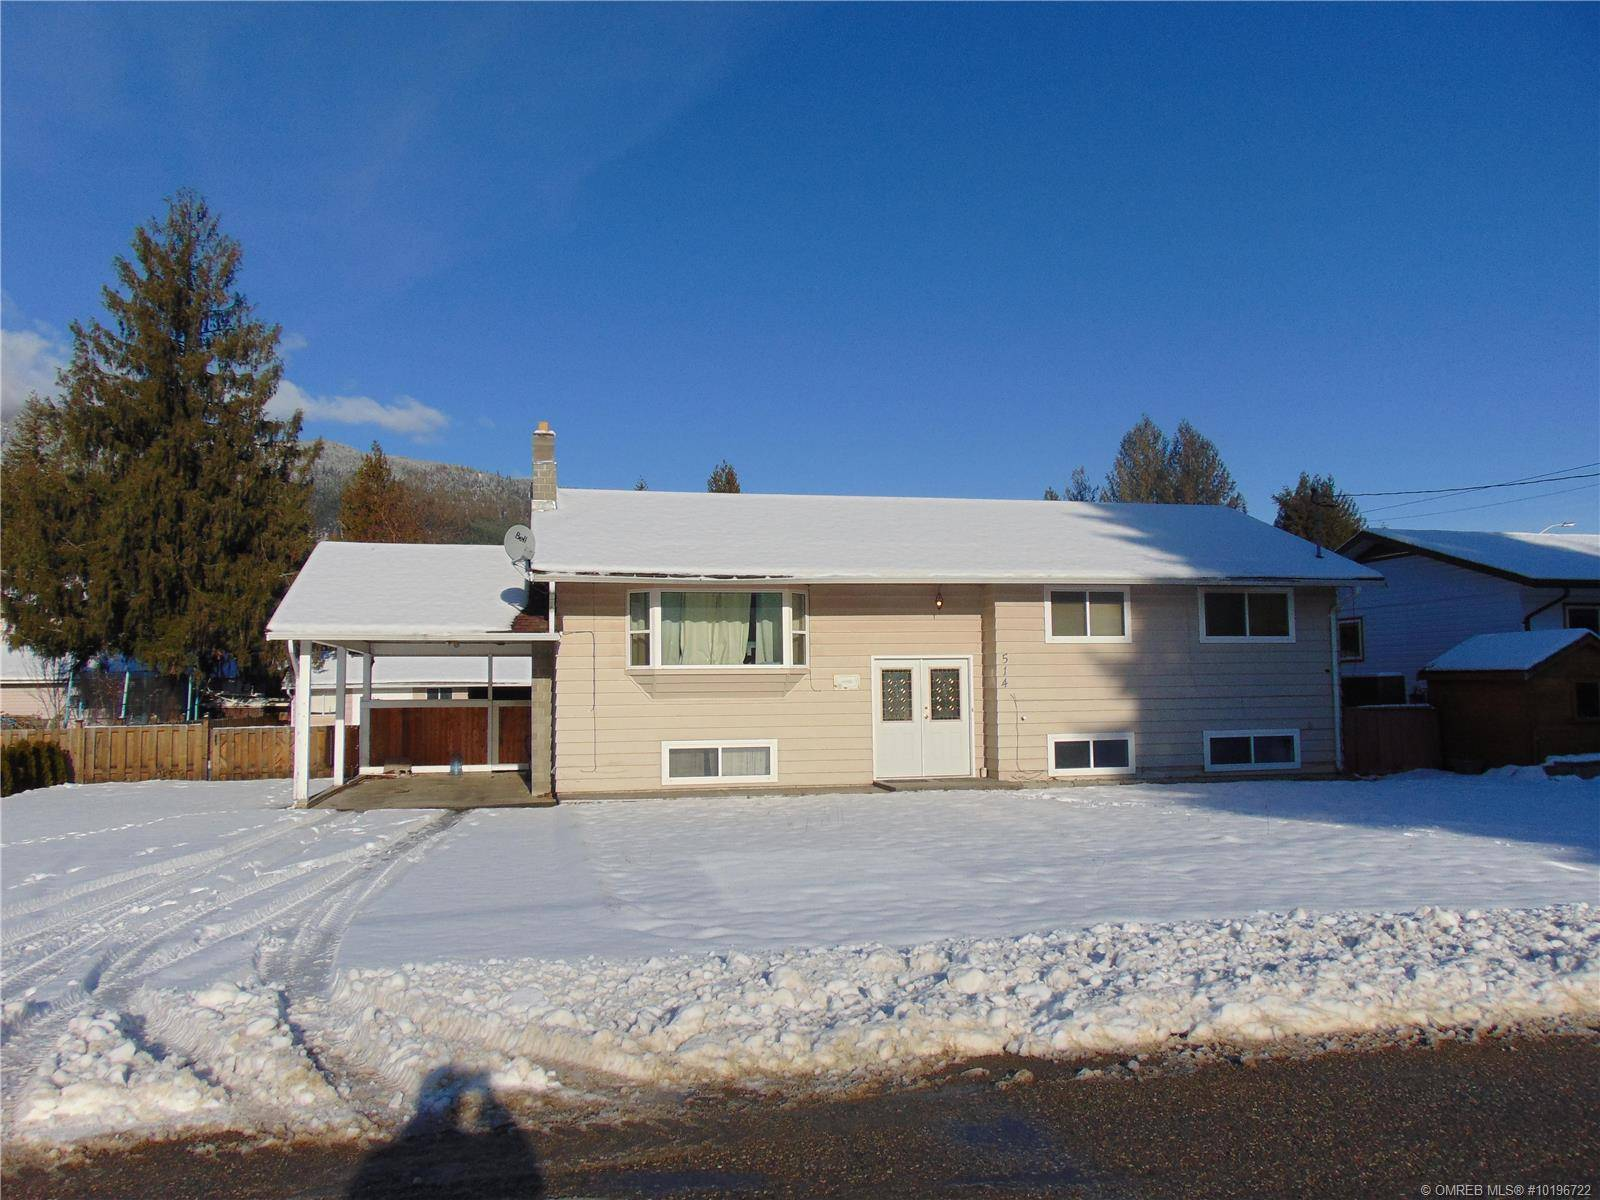 House for sale at 514 Spruce St Sicamous British Columbia - MLS: 10196722